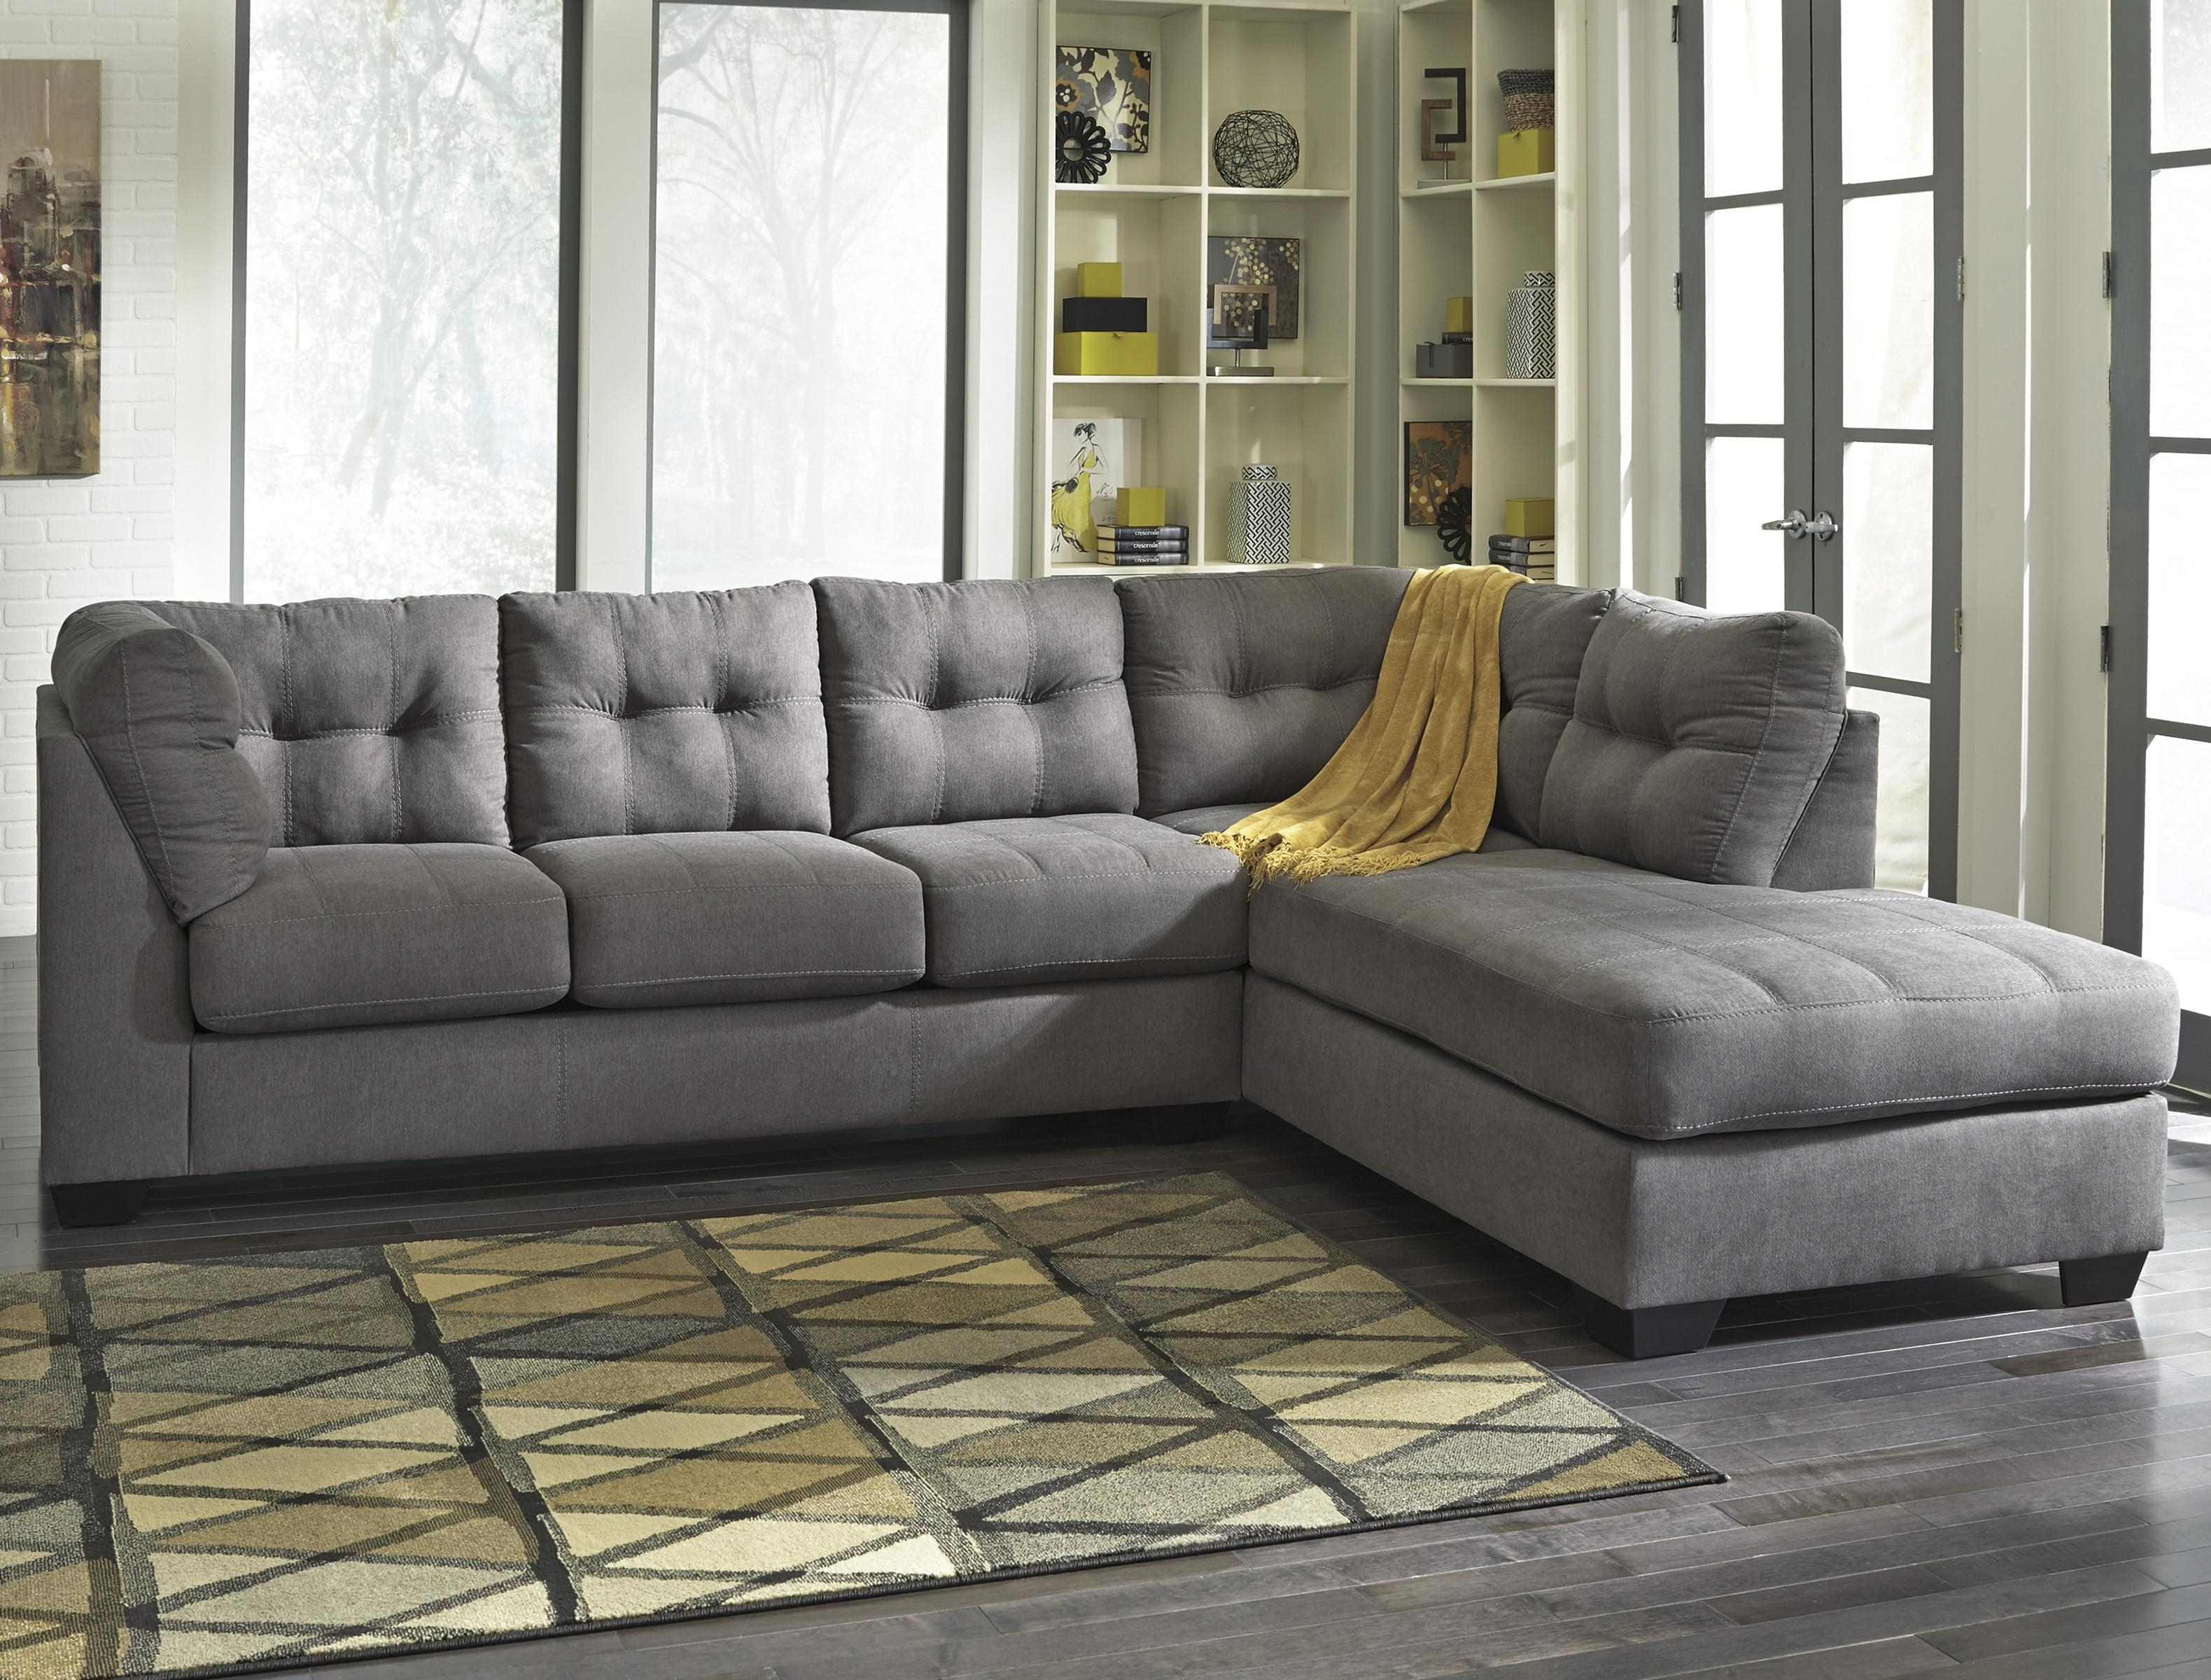 Luxury Sectional Sofas Portland Oregon 45 For Your Sectional Sofas with Portland Oregon Sectional Sofas (Image 5 of 10)